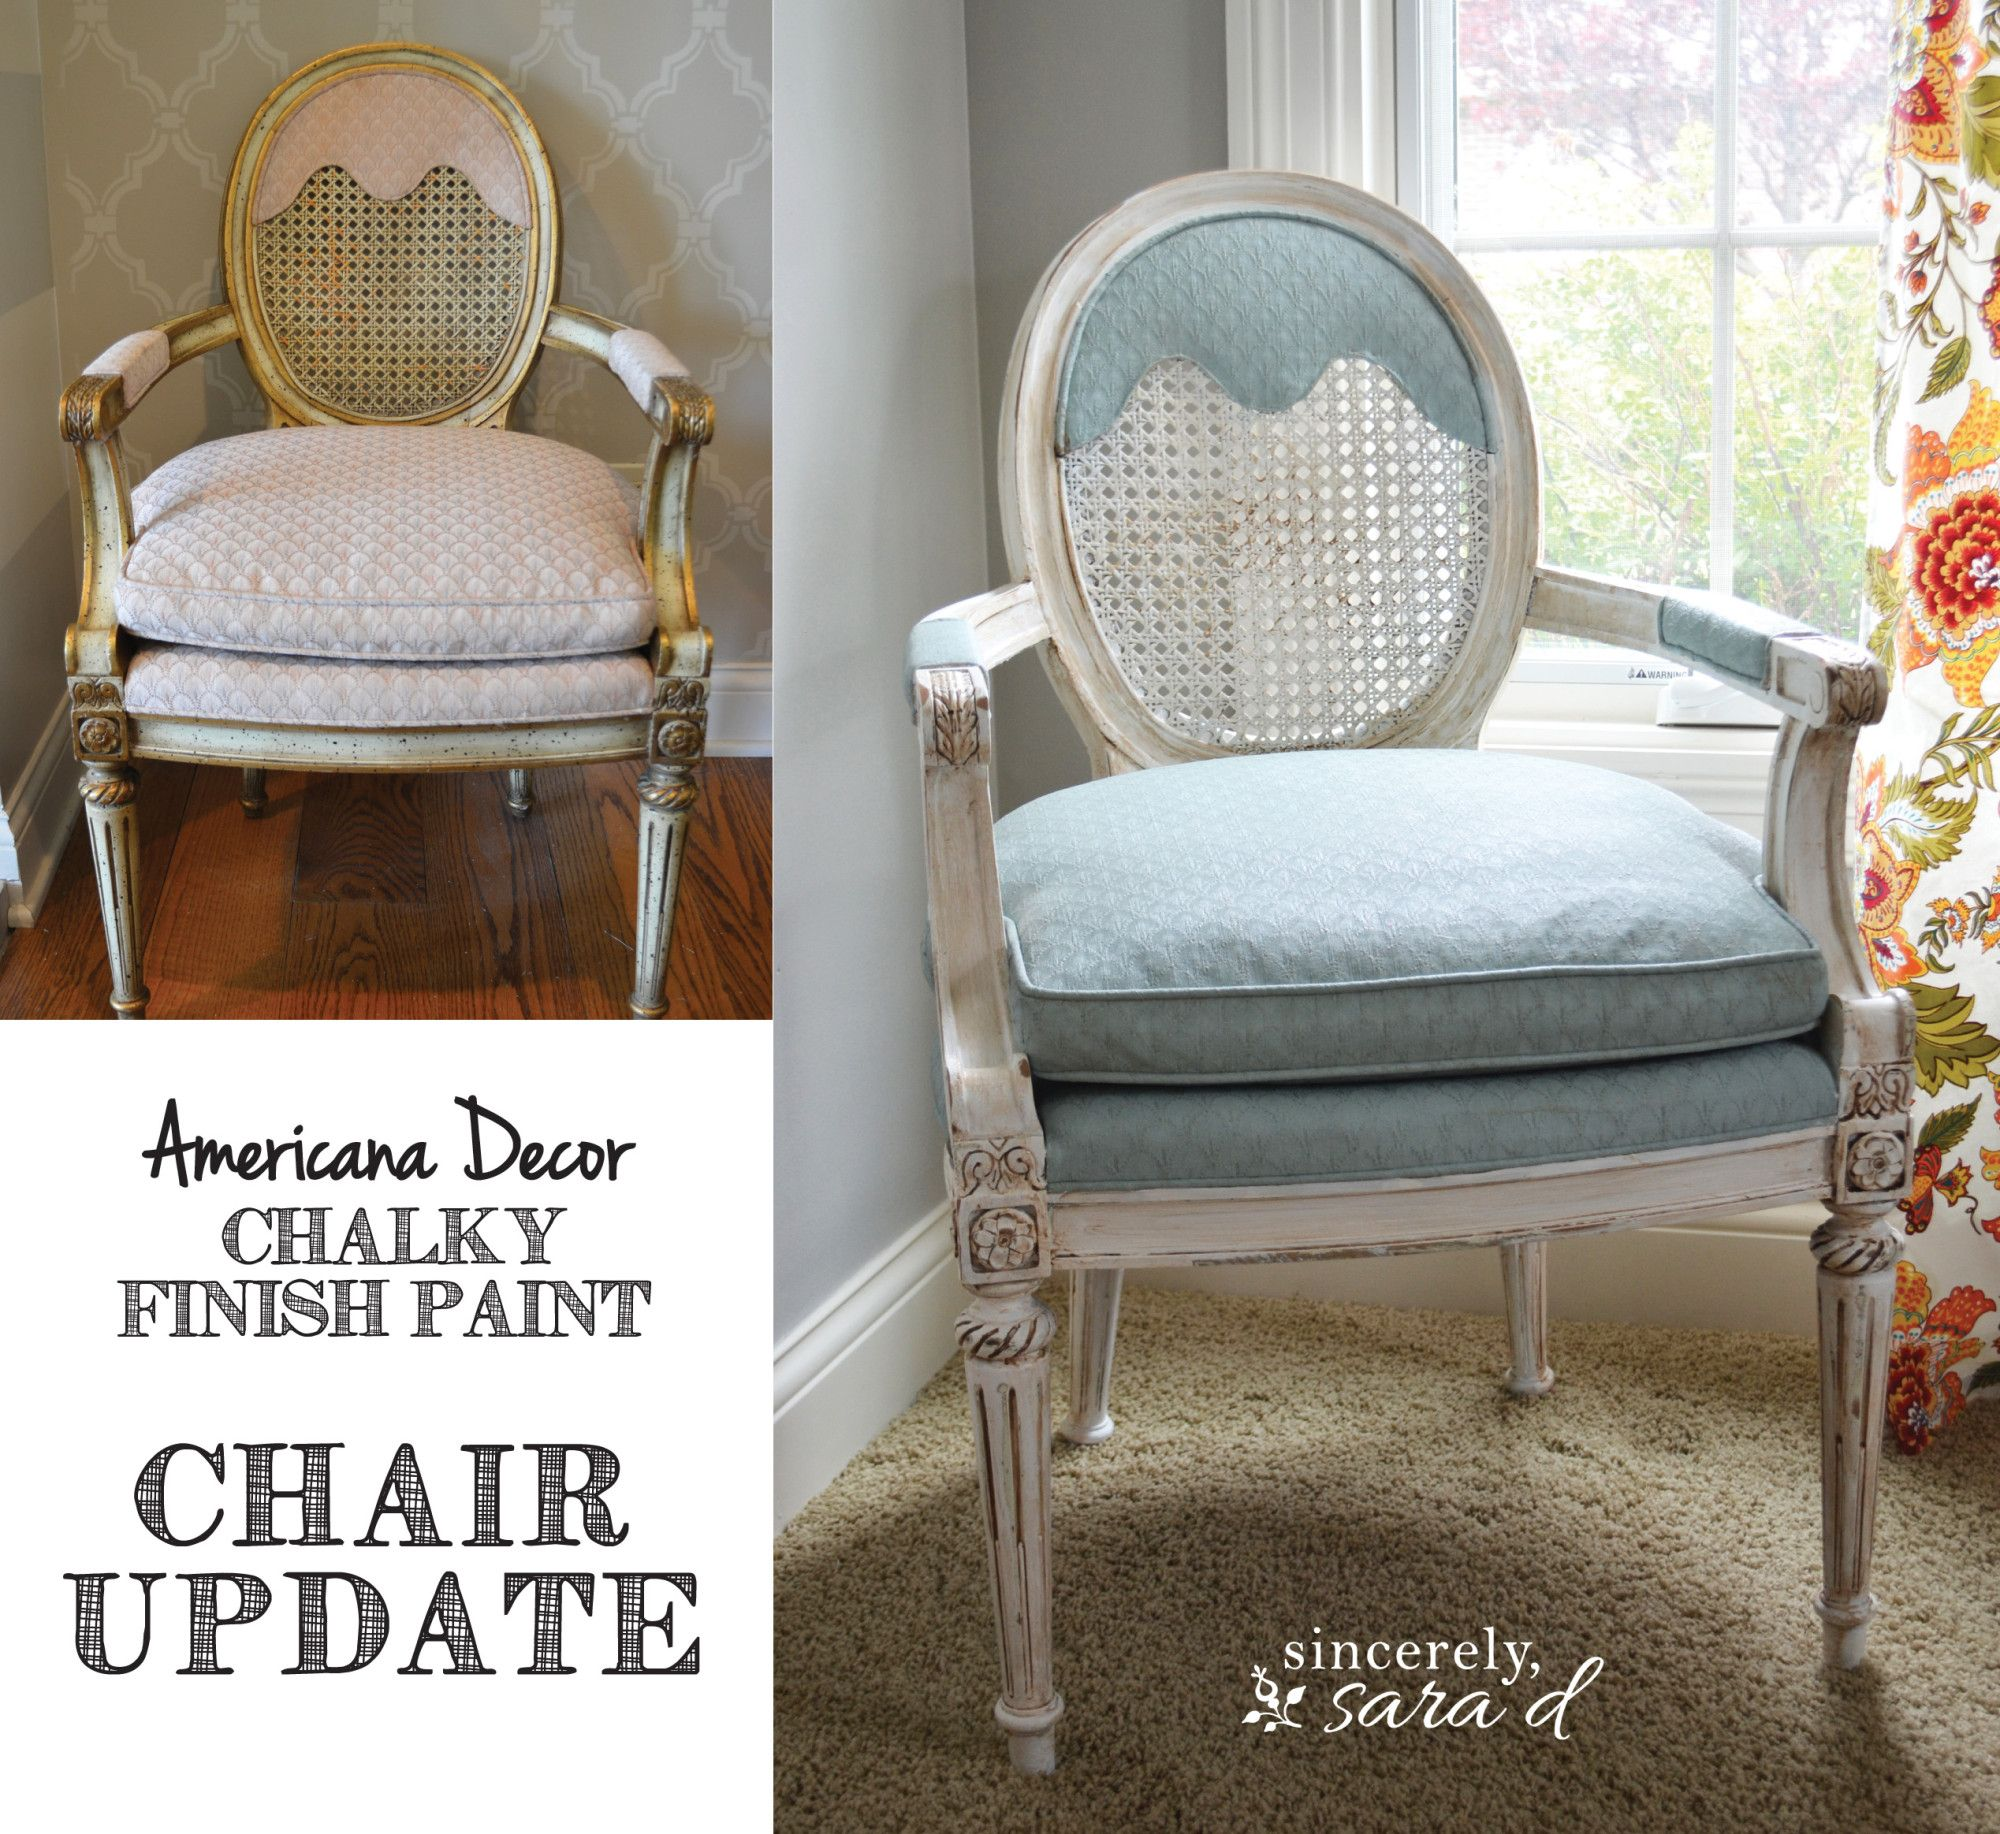 Painted Upholstered Chair Using Chalky Finish Paint